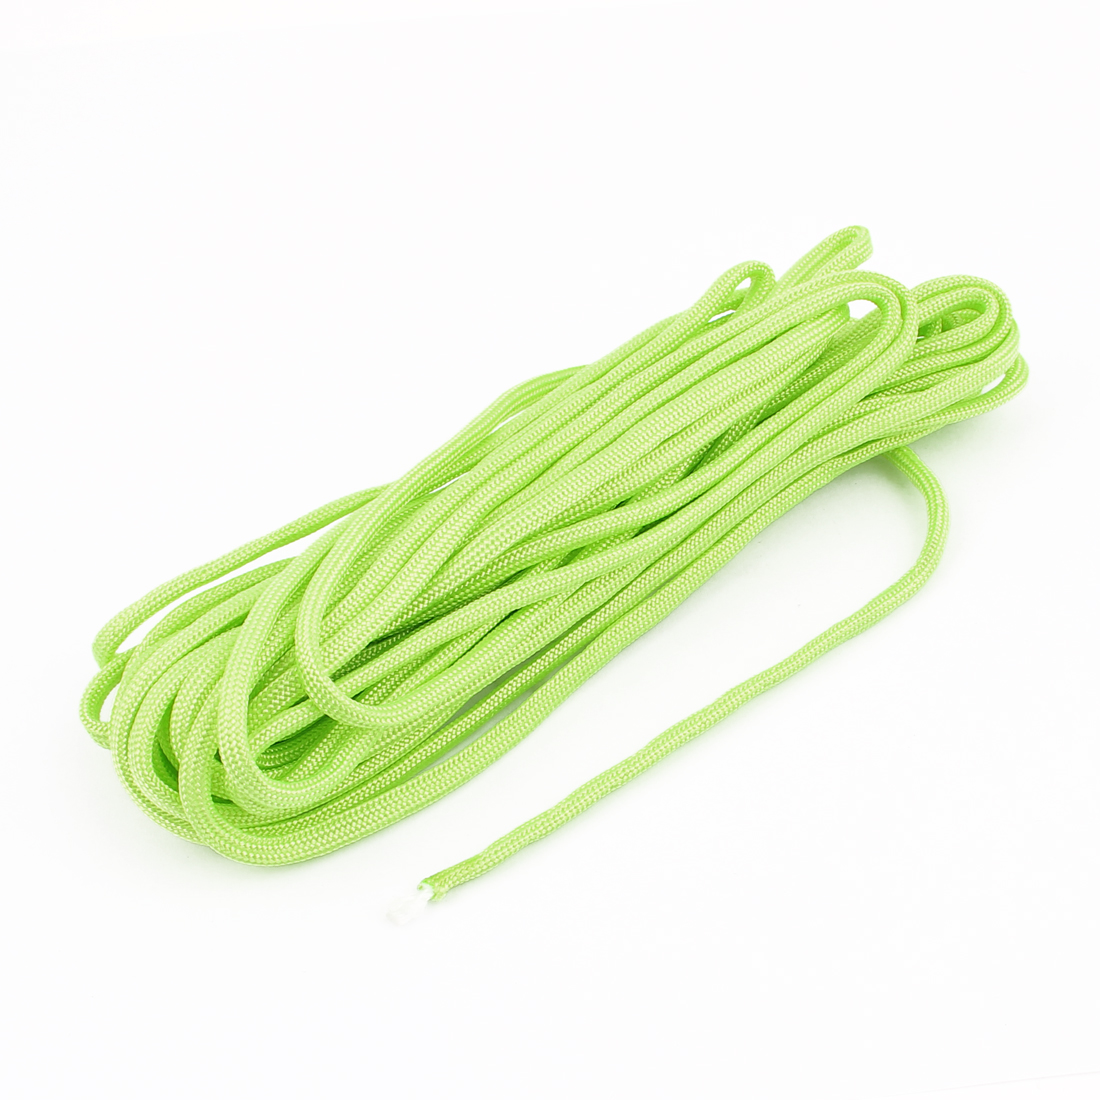 Outdoor Camping Hiking Survival Cord Safety Rope String Yellow Green 7M 23Ft Length